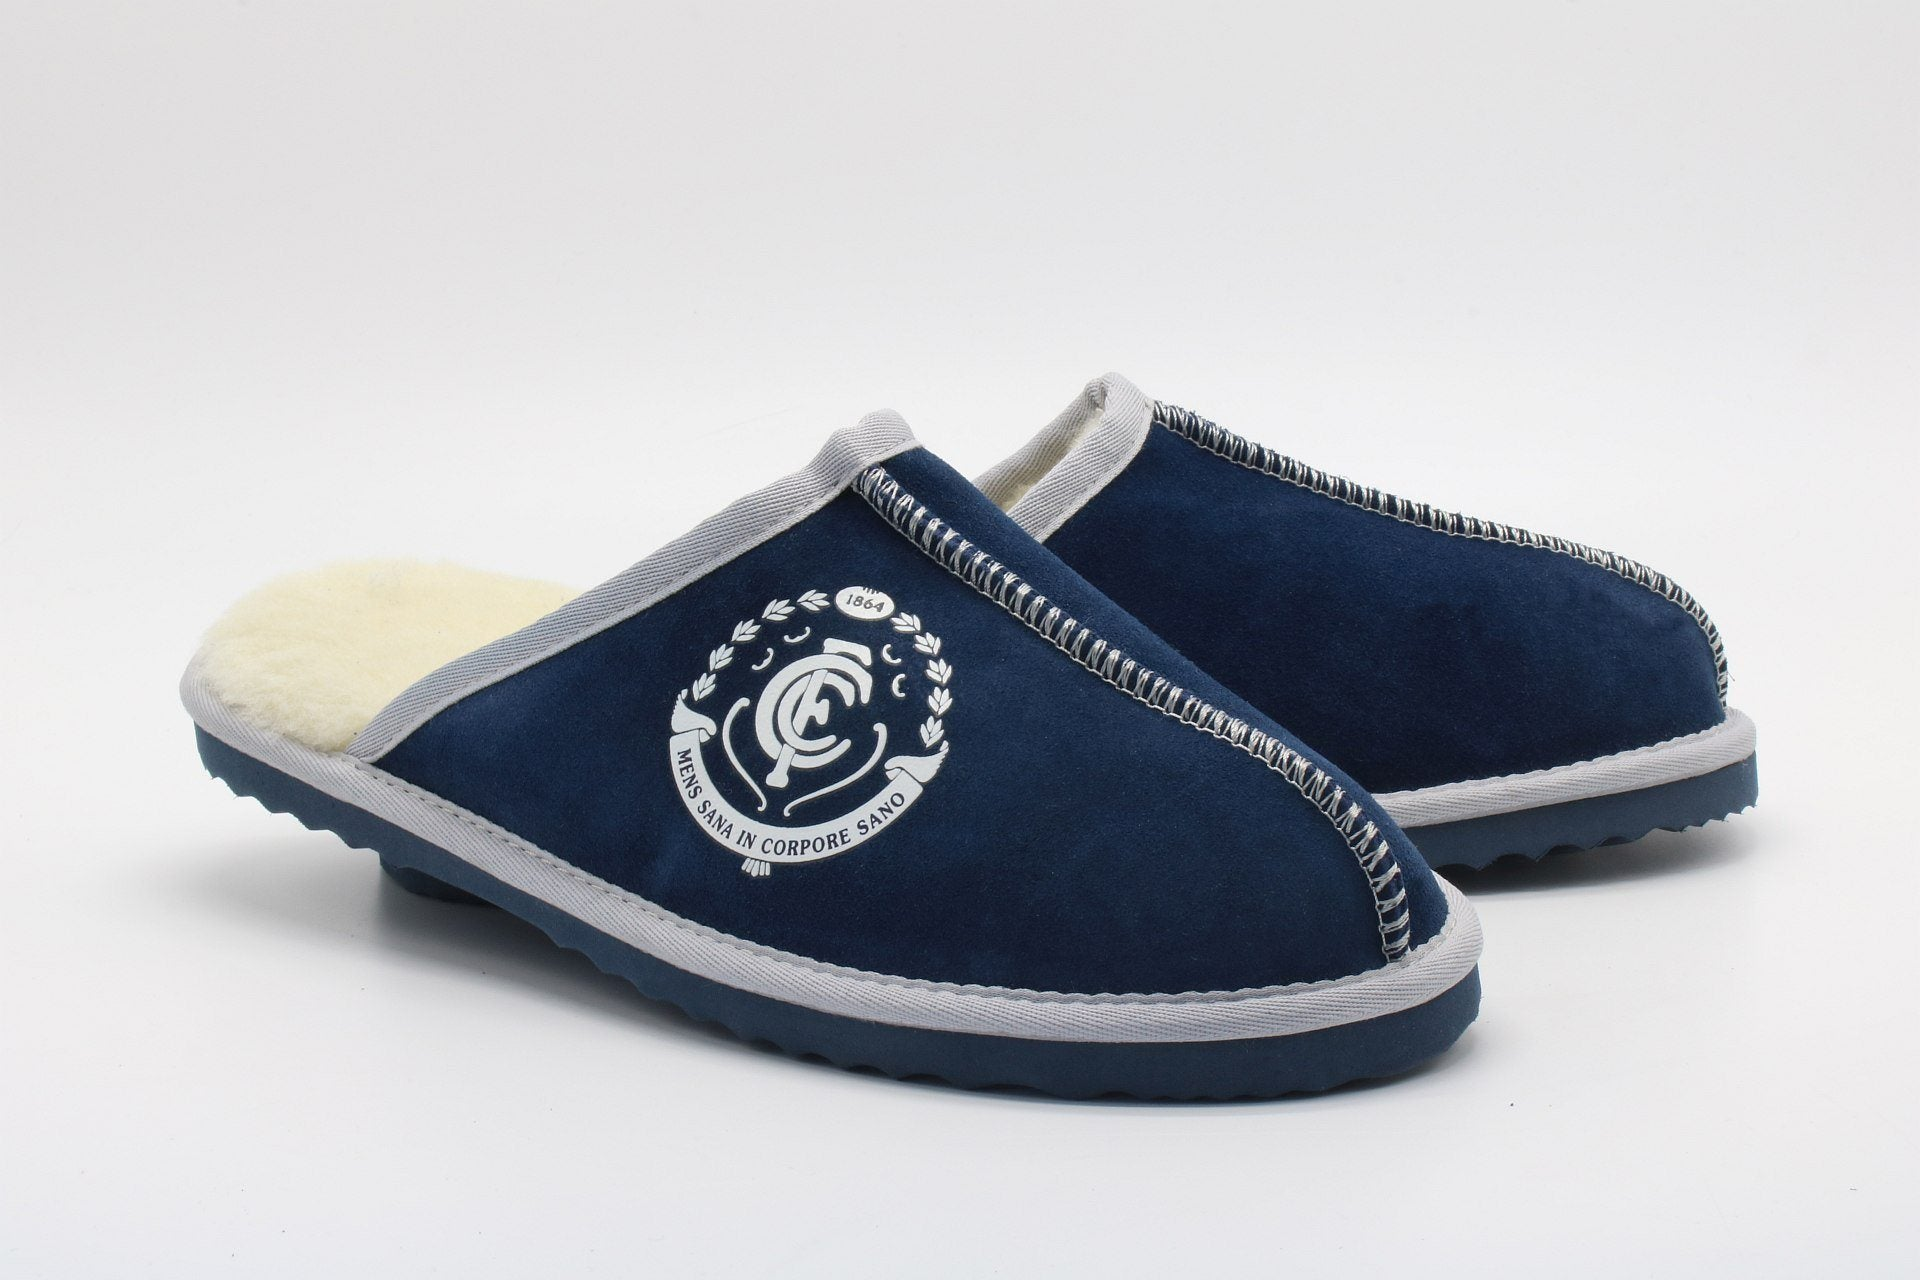 AFL Adults Slippers - Carlton Blues Footwear Team Uggs